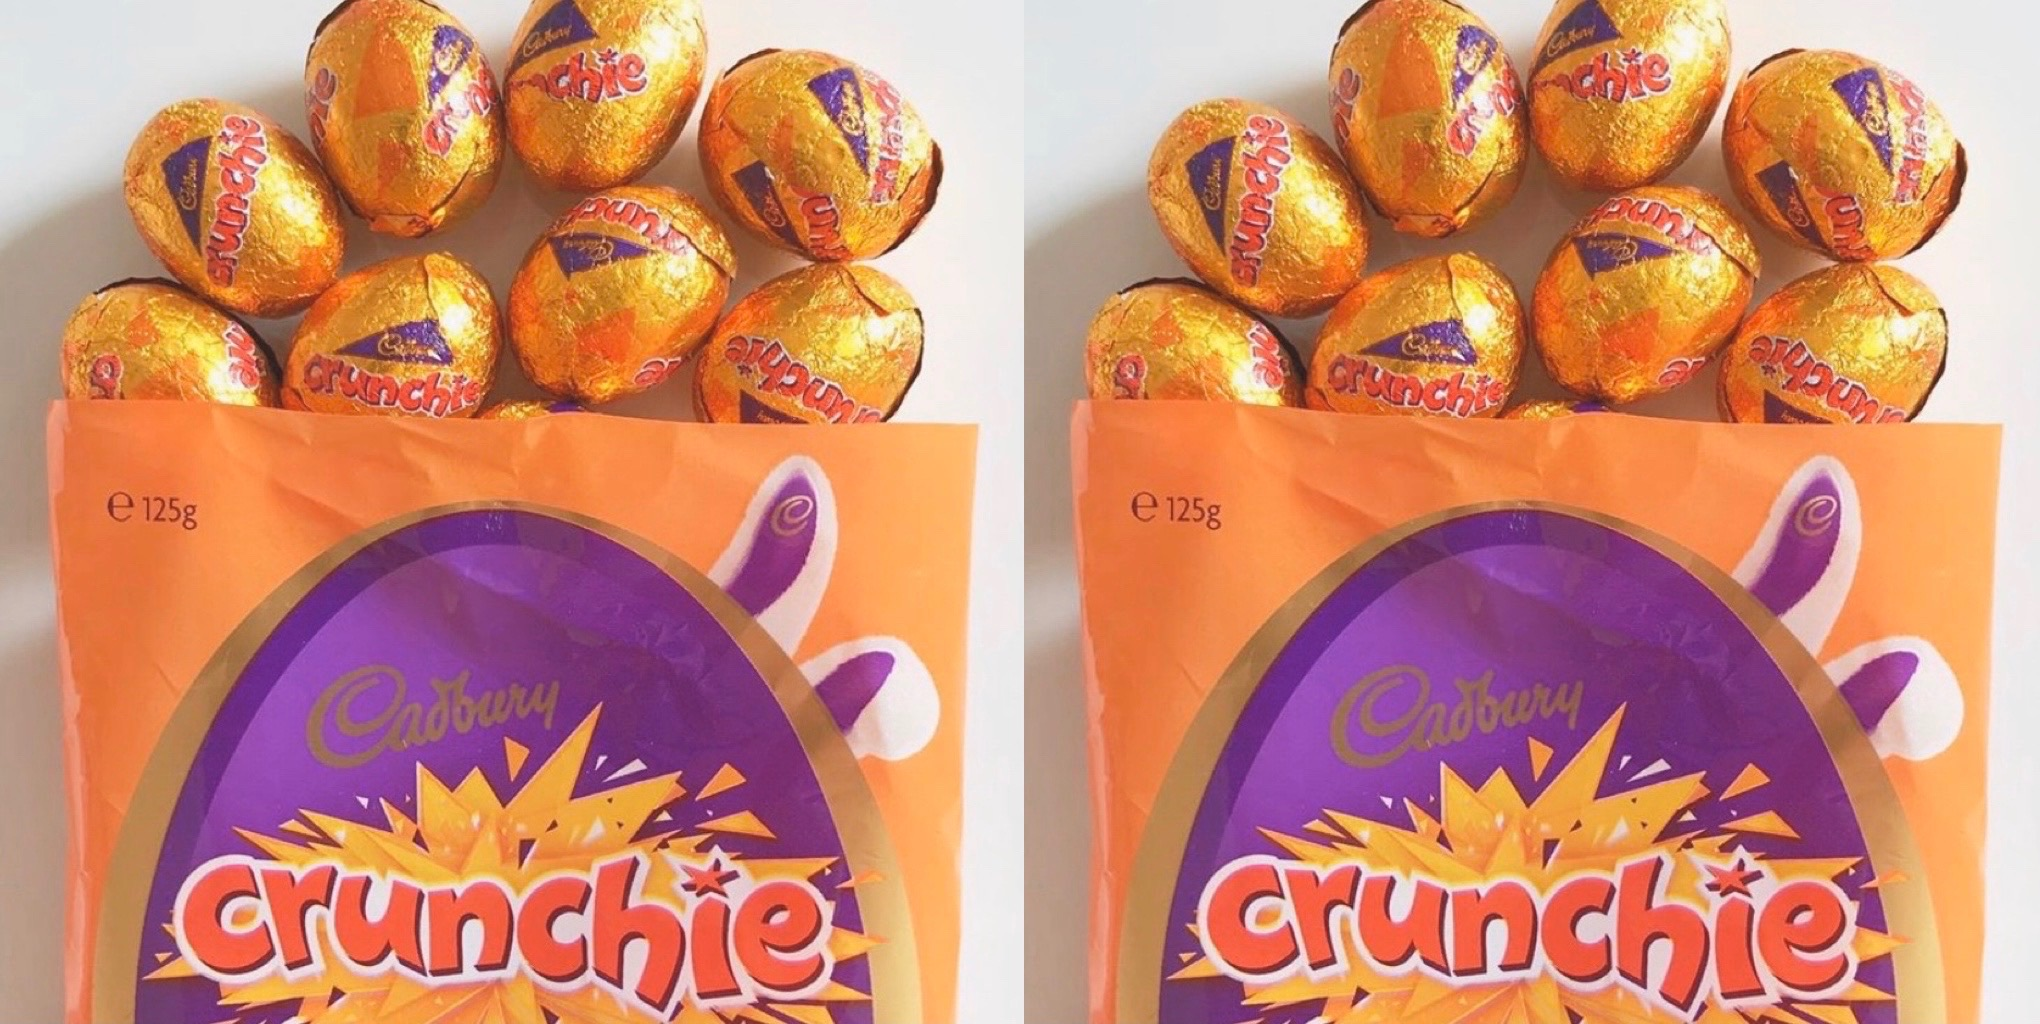 Cadbury launches 'delicious' Crunchie Eggs that are 'embedded with honeycomb pieces'